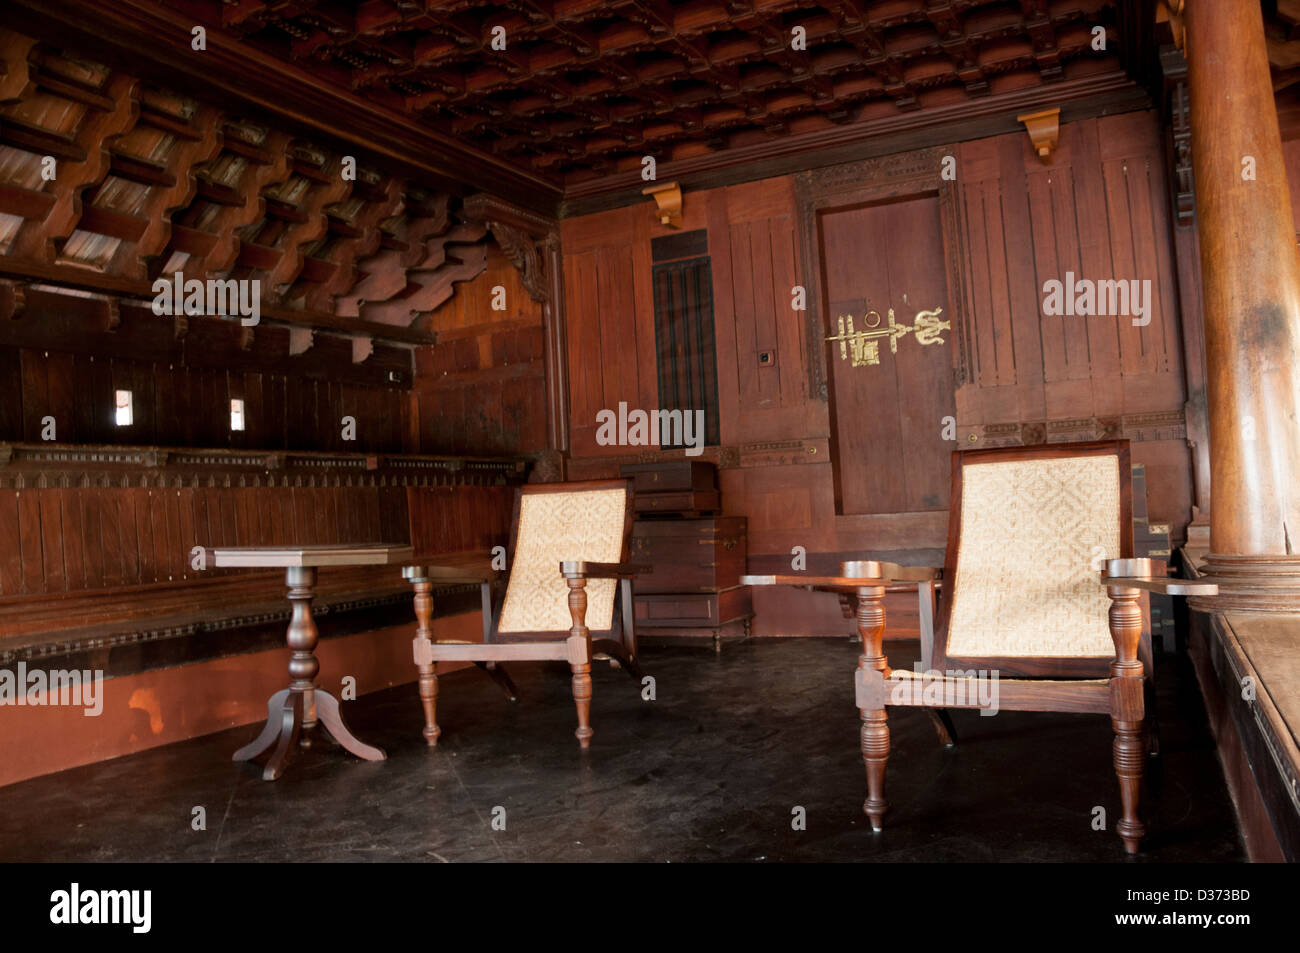 Traditional siting room of ancient Indian house Stock Photo ...